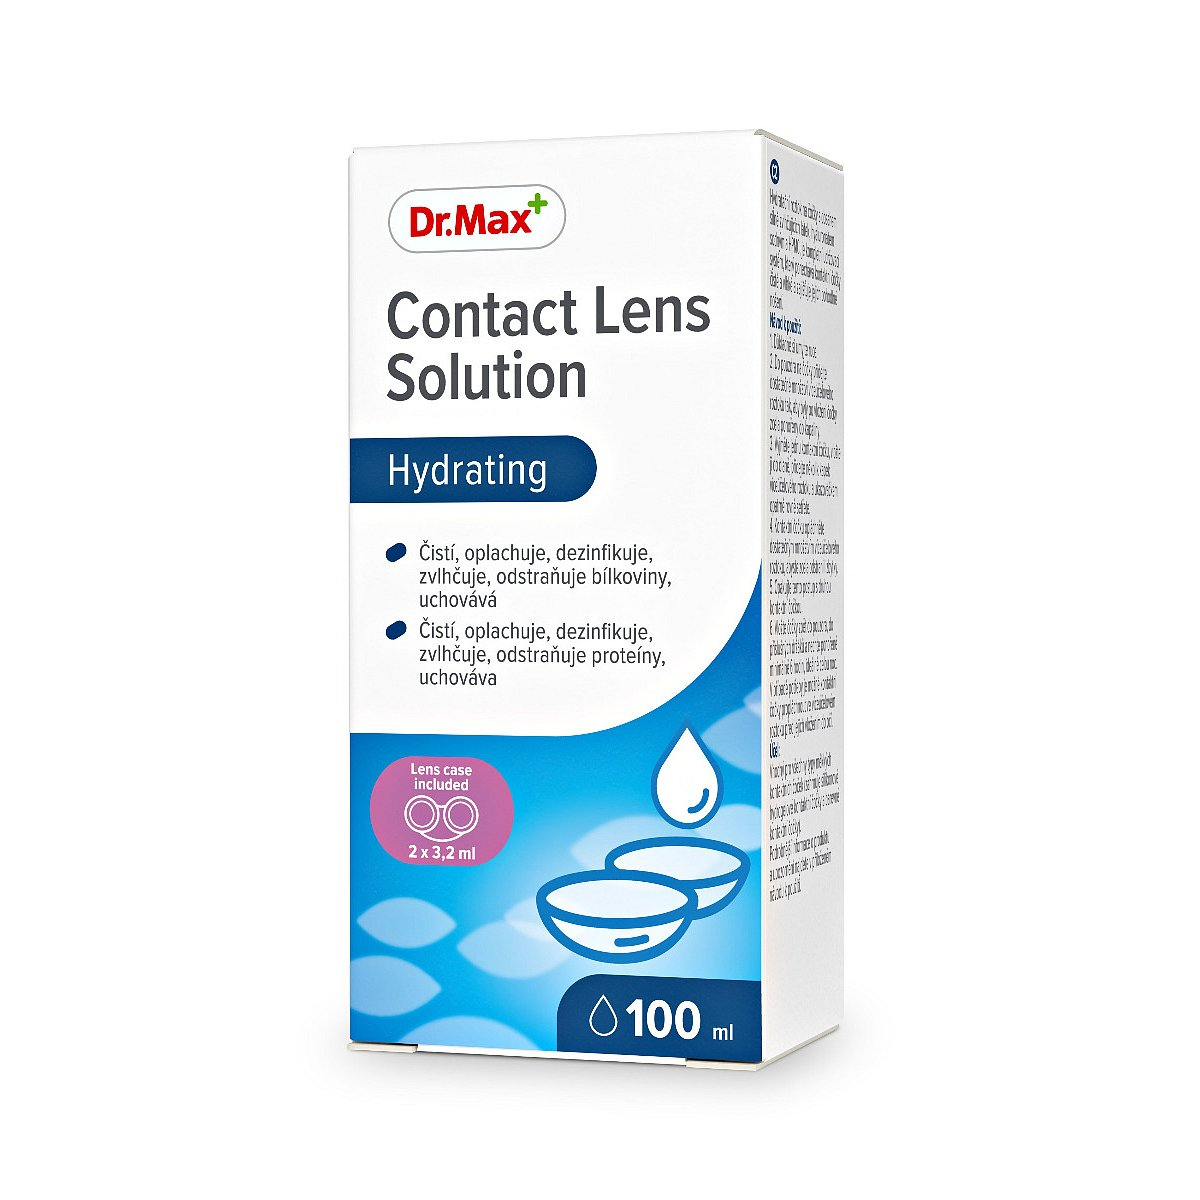 Dr.Max Contact Lens Solution roztok na kontaktní čočky 100 ml